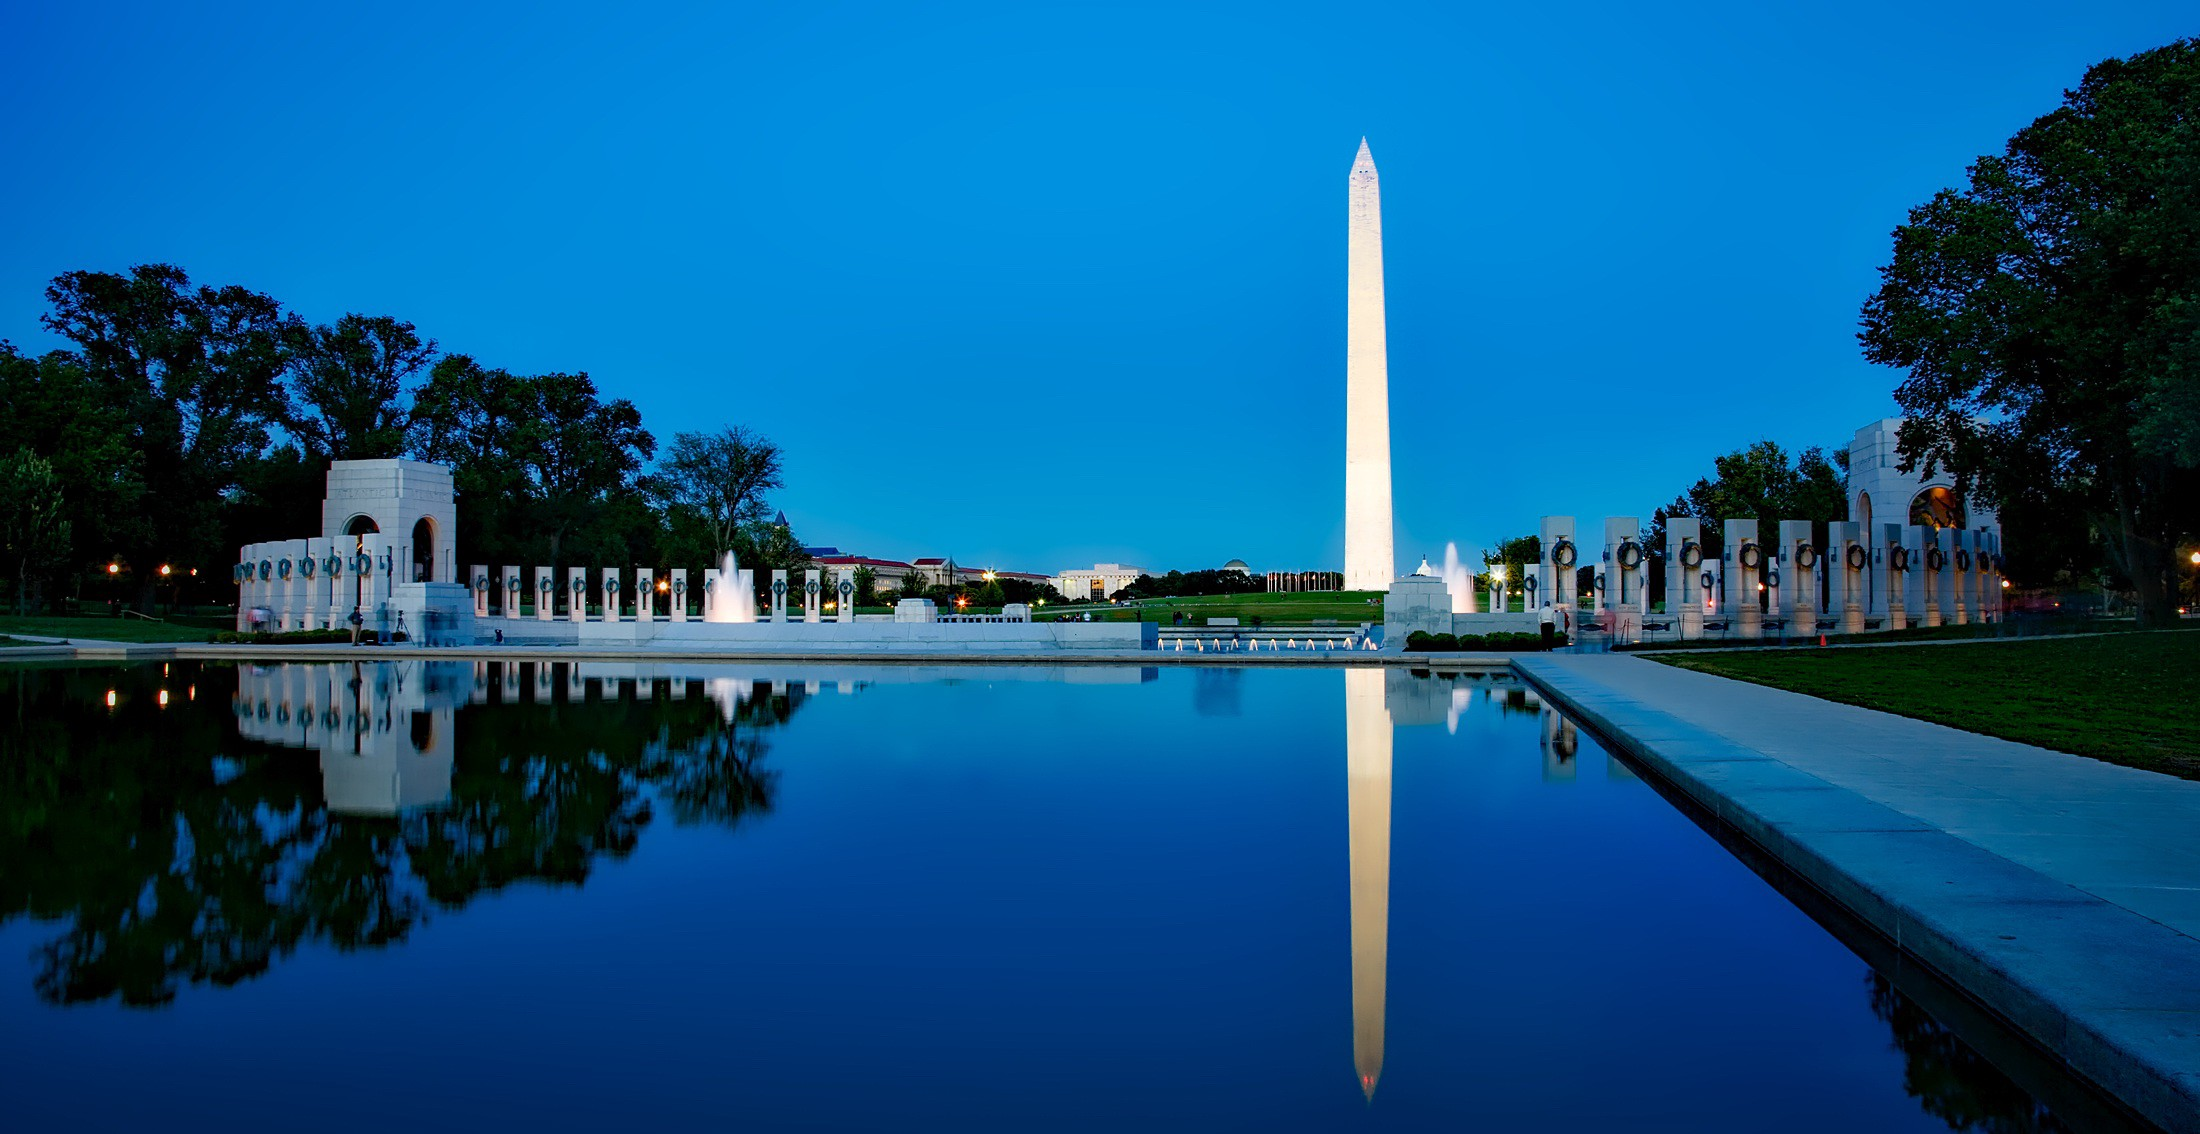 Wide shot of the Washington Monument and Lincoln Memorial Reflecting Pool at dusk with blue night sky and darker blue water